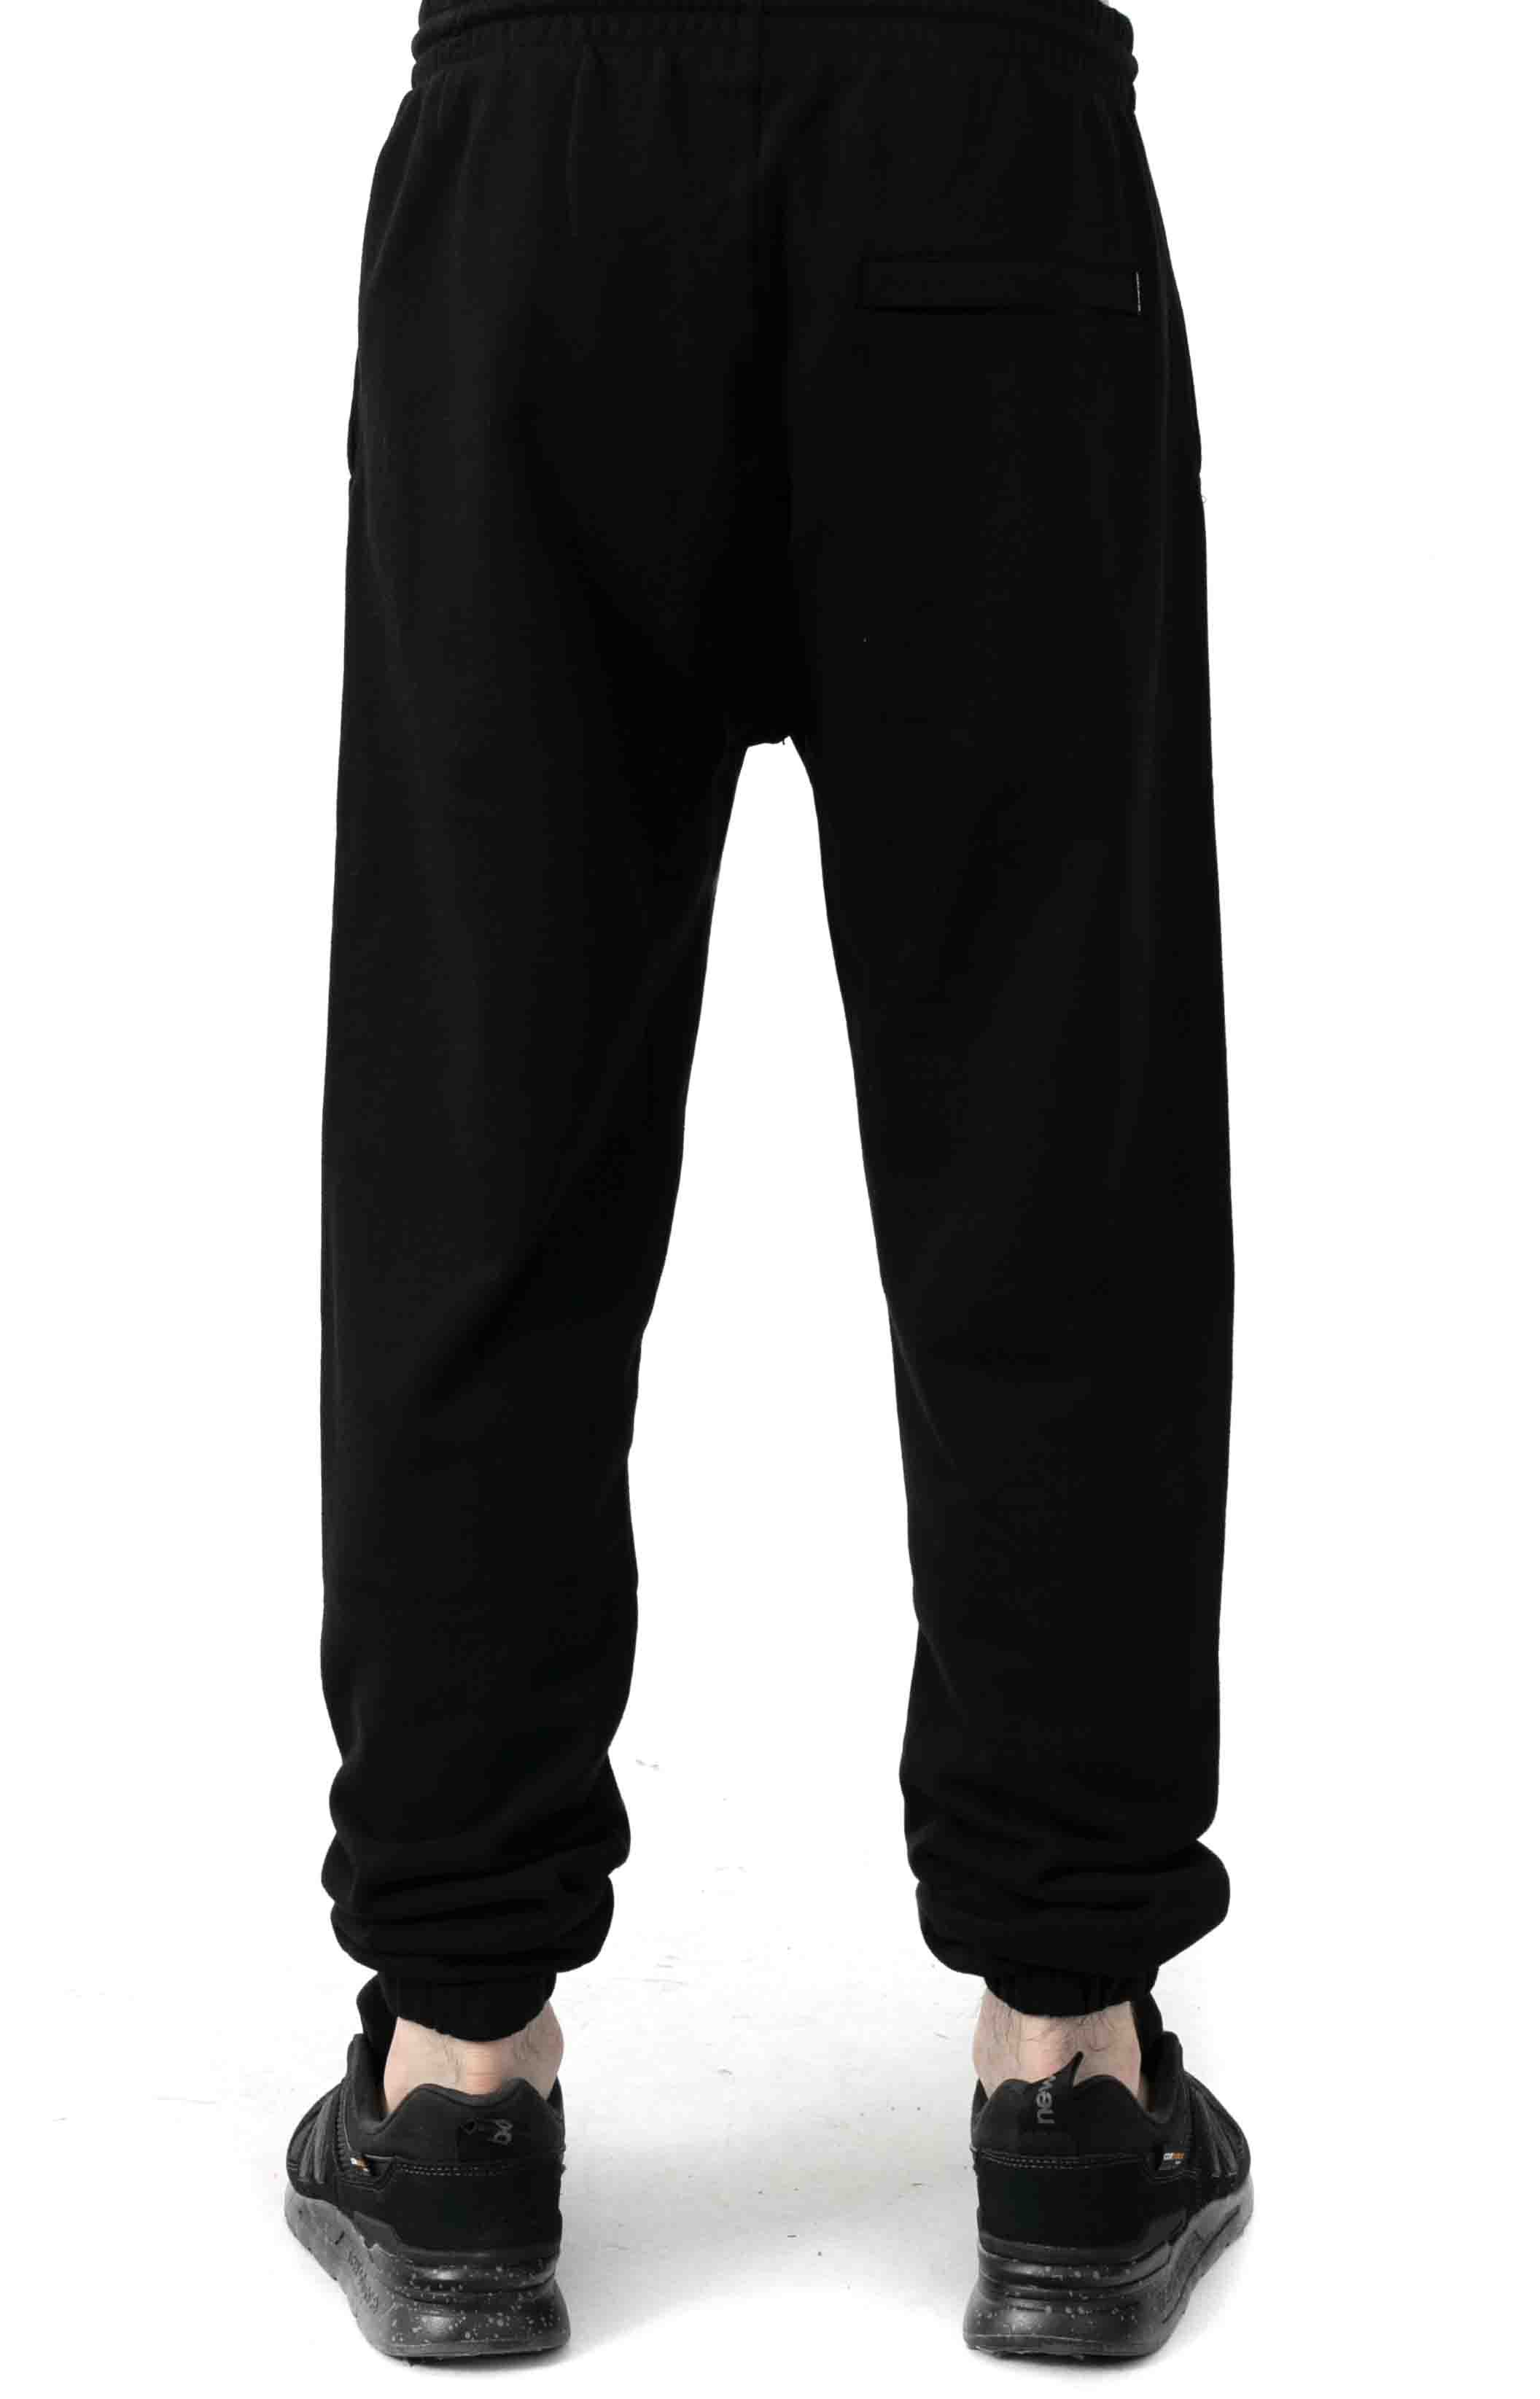 Spiral Sweatpant - Black 3